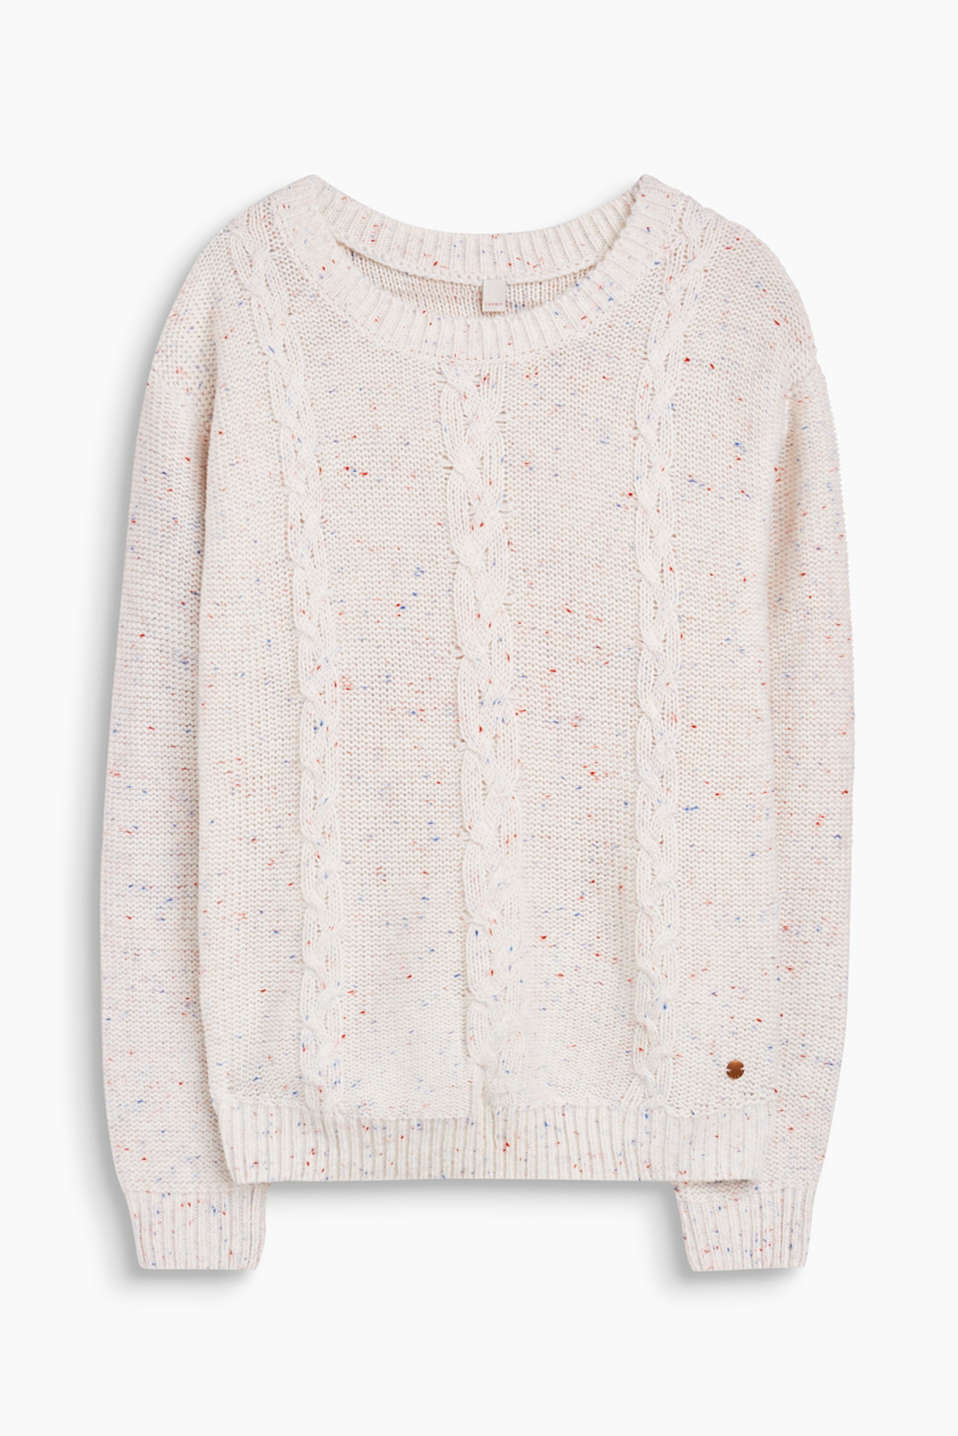 Cuddly fave with a brand new twist: jumper with a cable pattern and stunning bobbles.